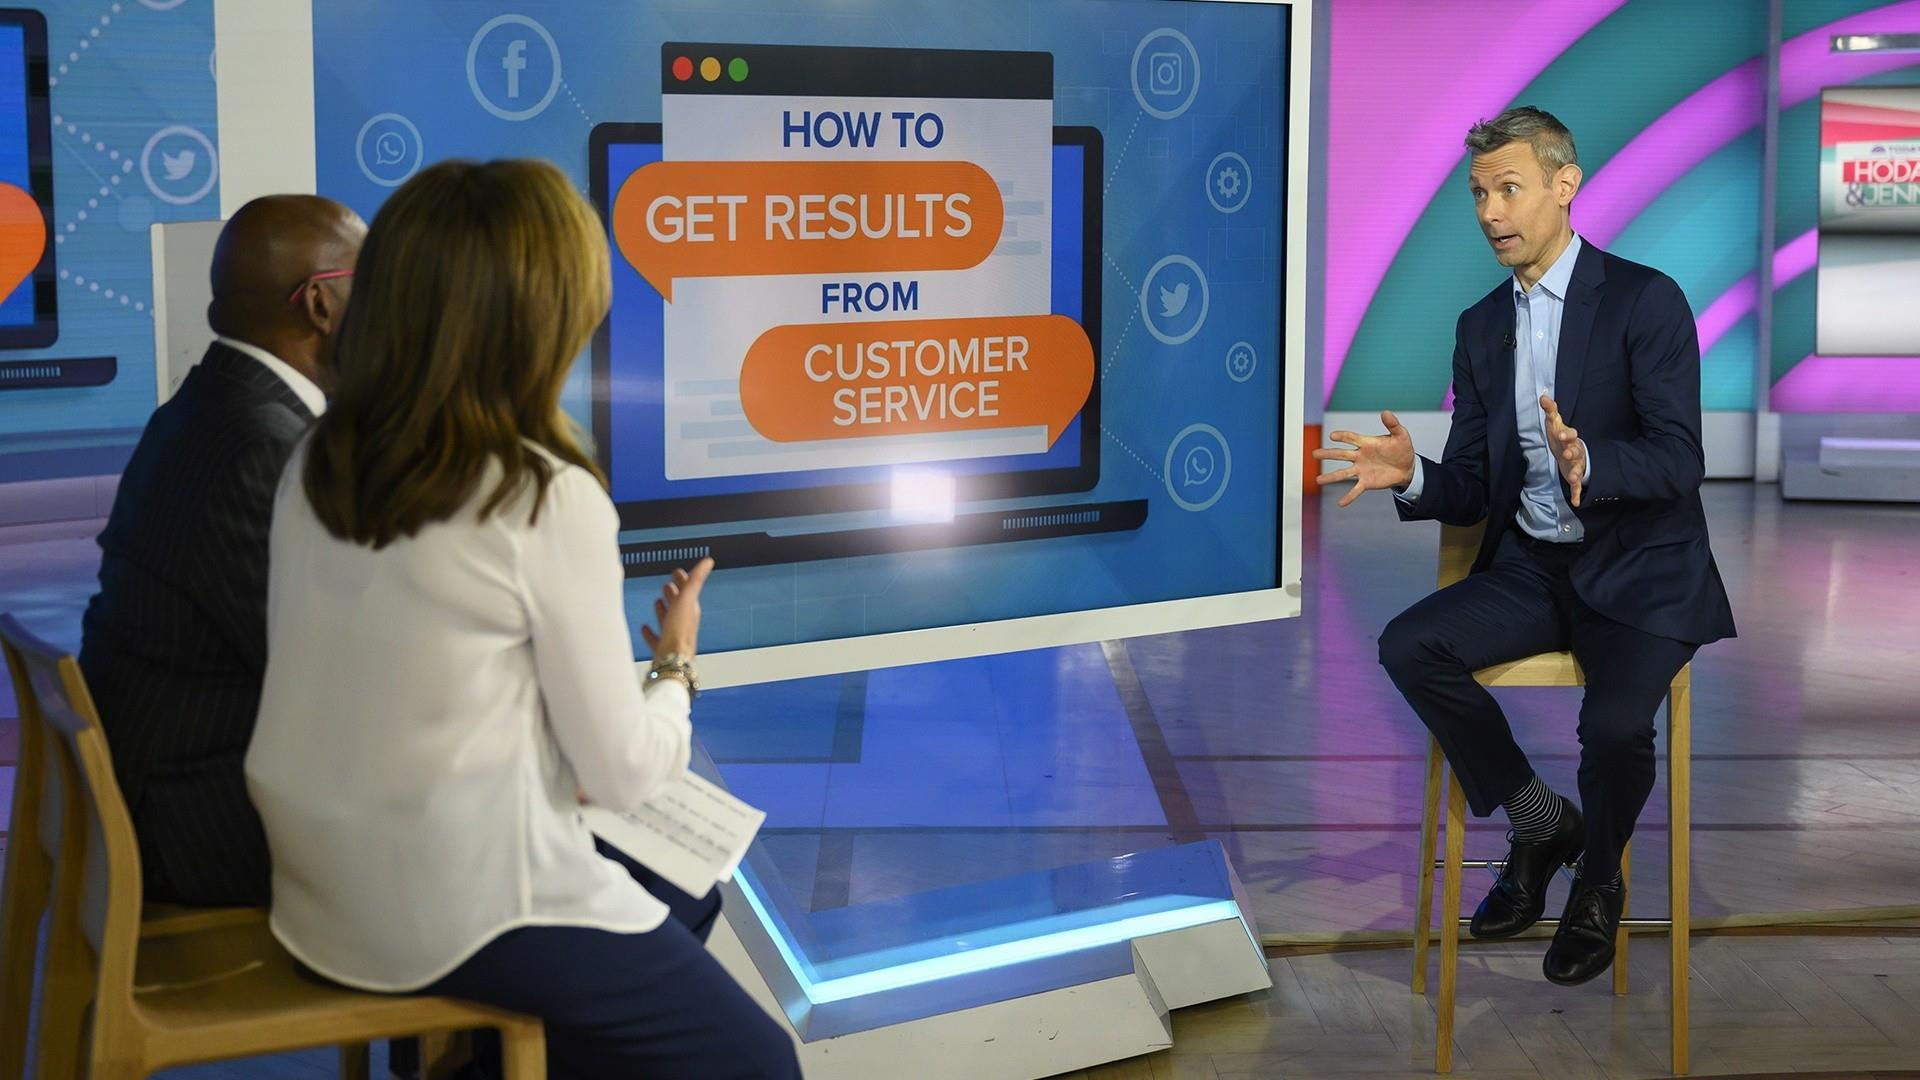 How to get what you need from customer service without the hassle